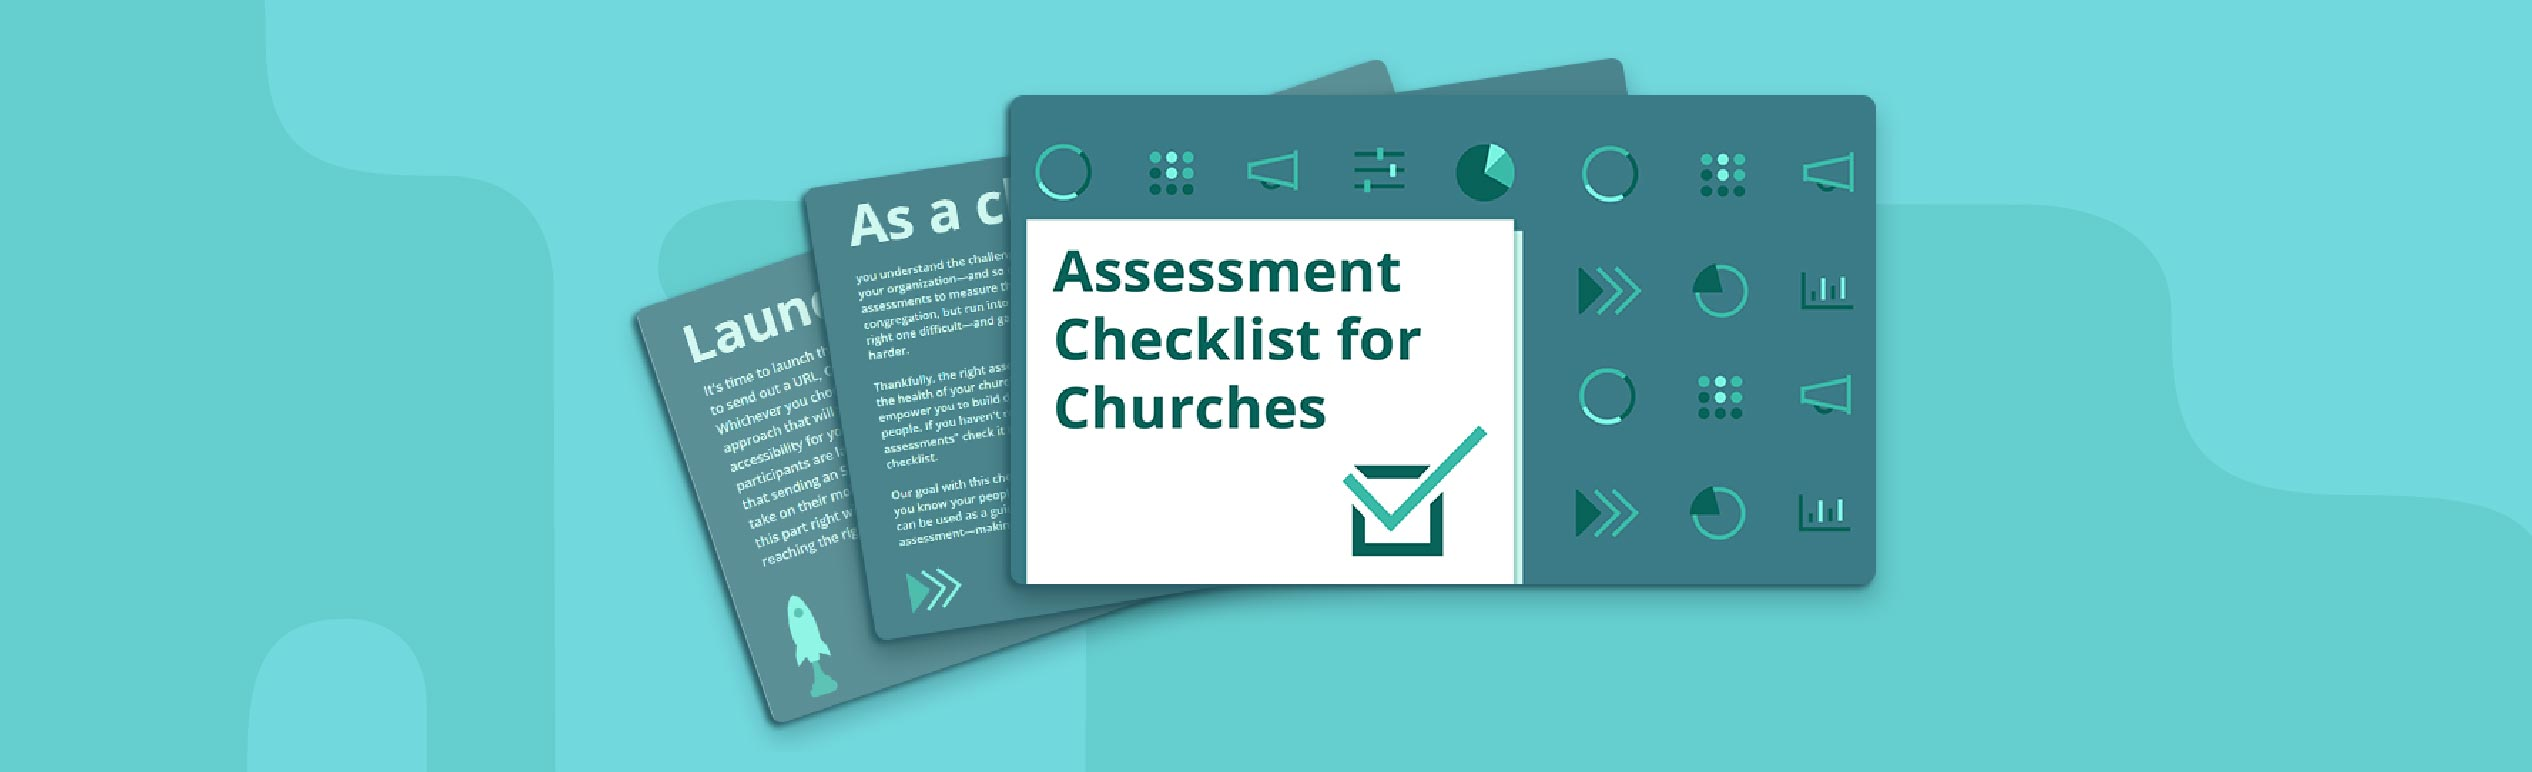 Assessment_checklist_for_churches_gloo